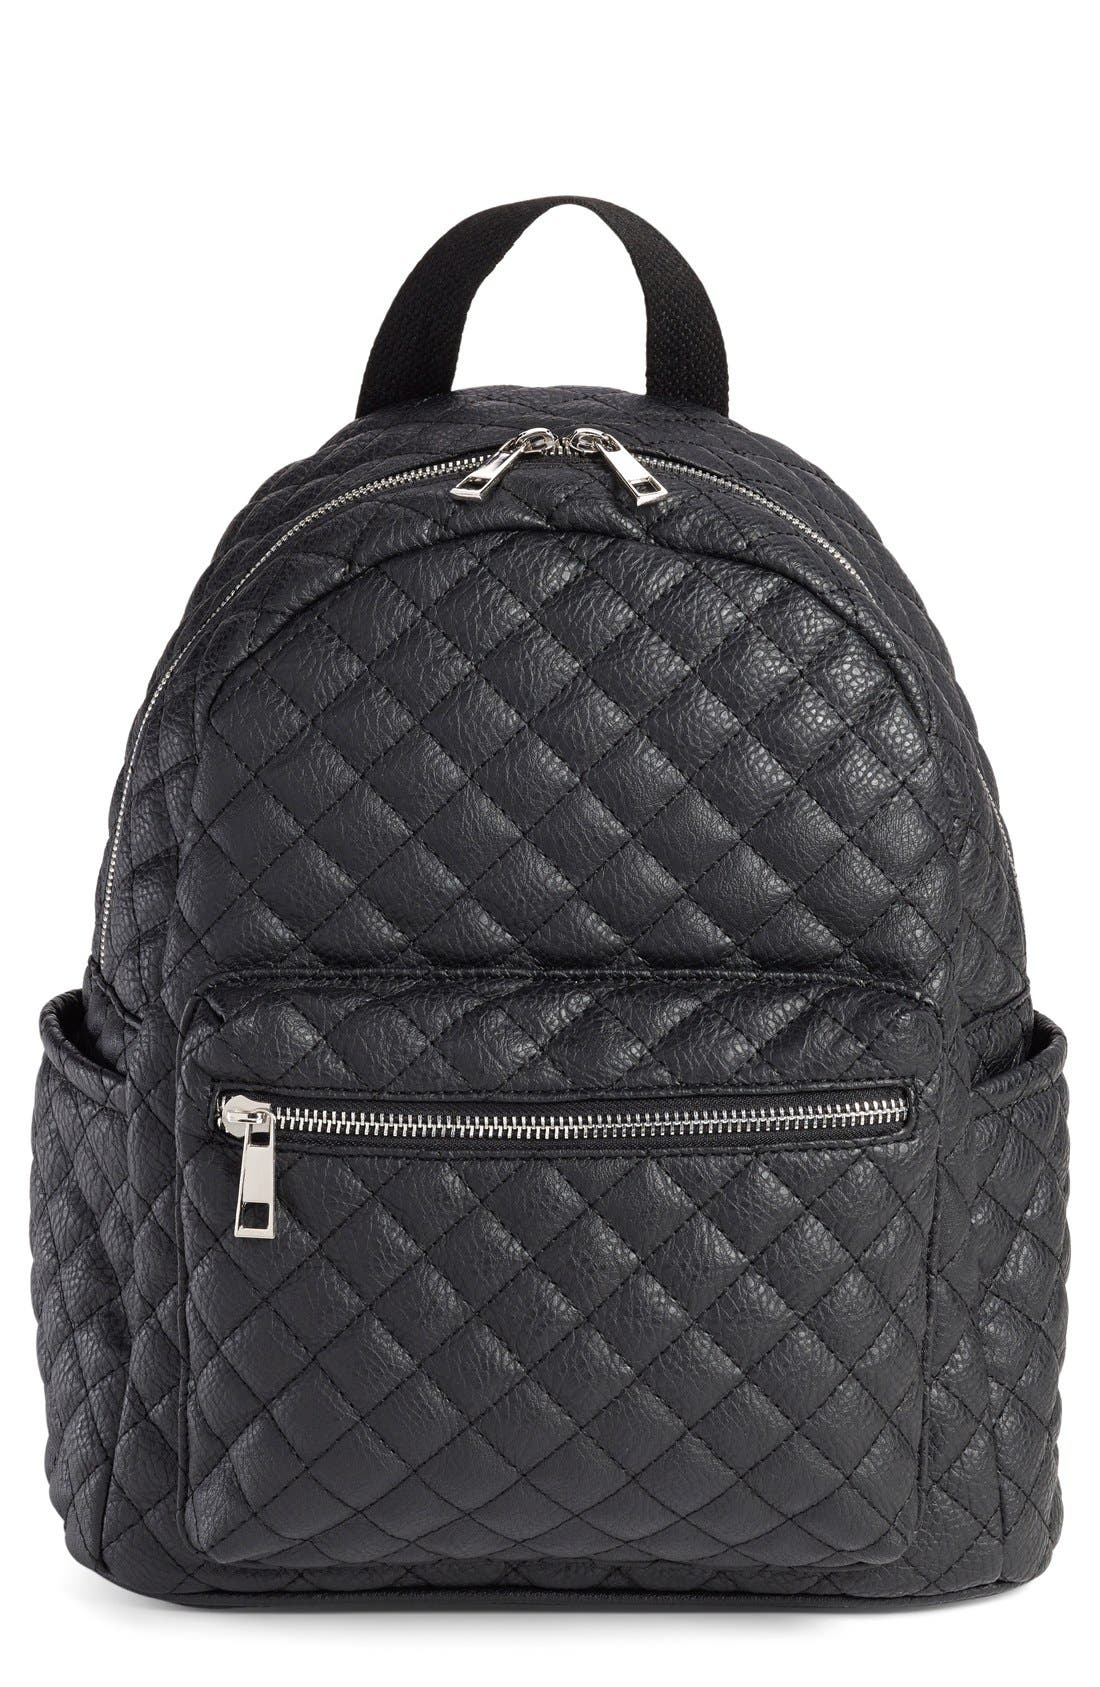 Alternate Image 1 Selected - Amici Accessories Faux Leather Quilted Backpack